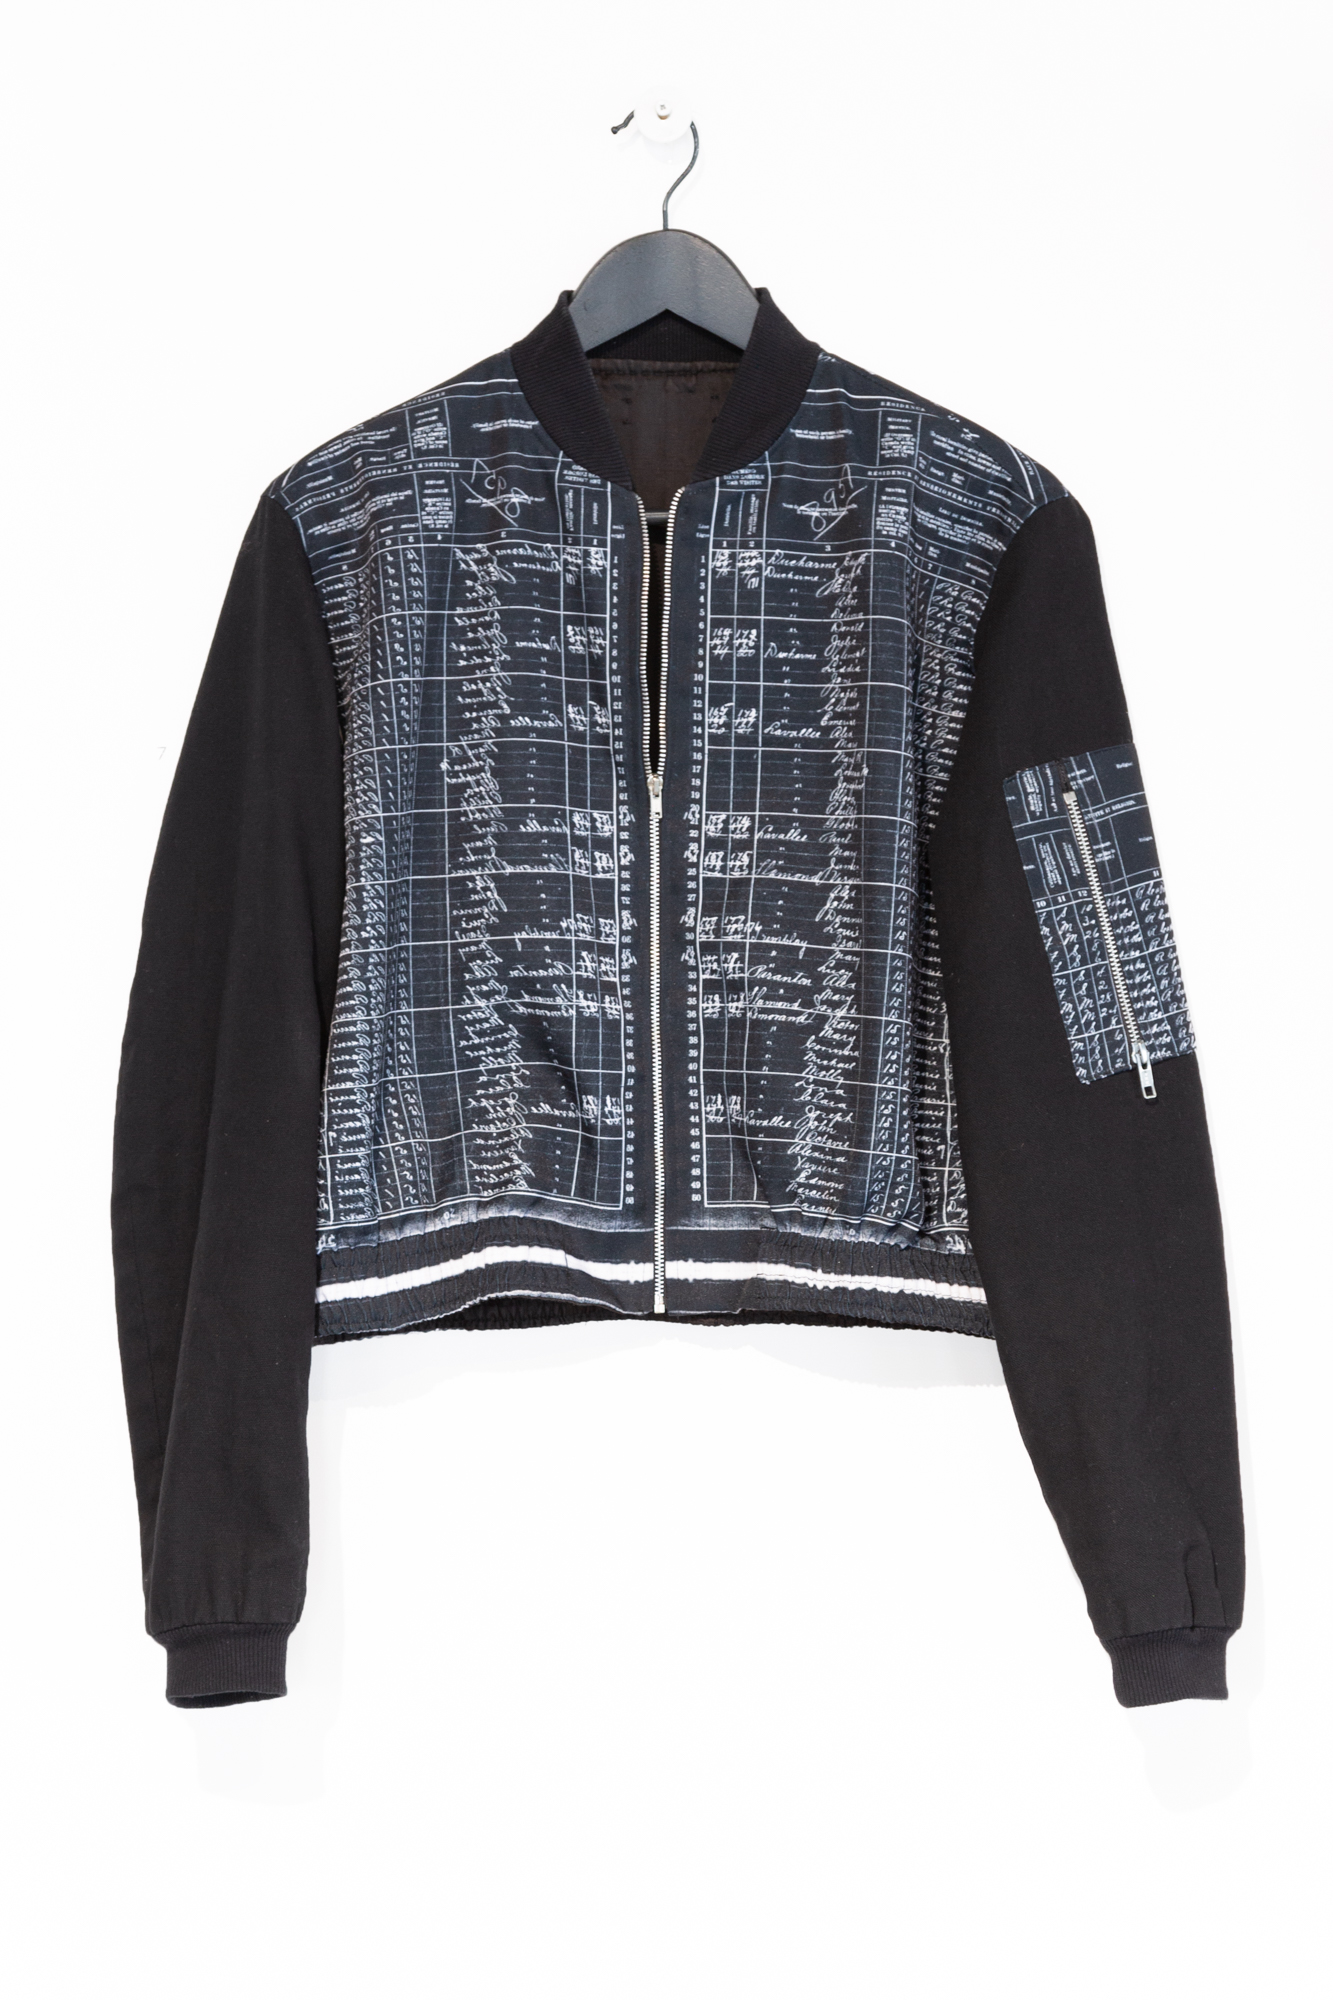 The Census Print Bomber Jacket